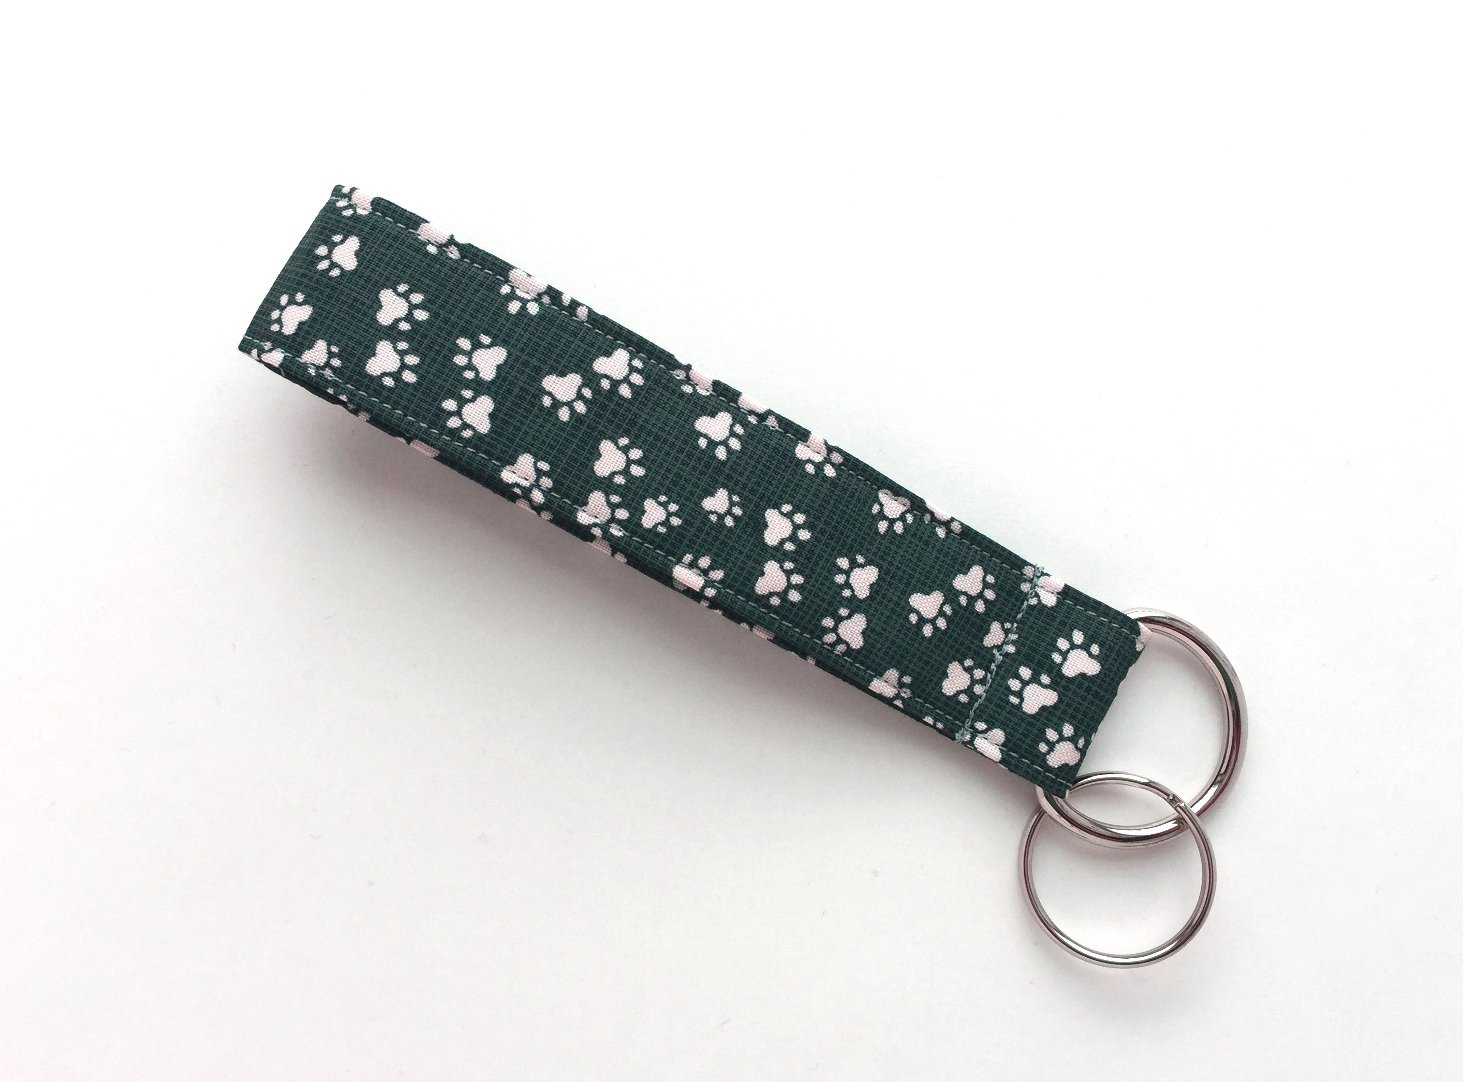 Cat and Dog Paw Prints Keychain Wristlet - 100% Organic Cotton Fabric Key Lanyard